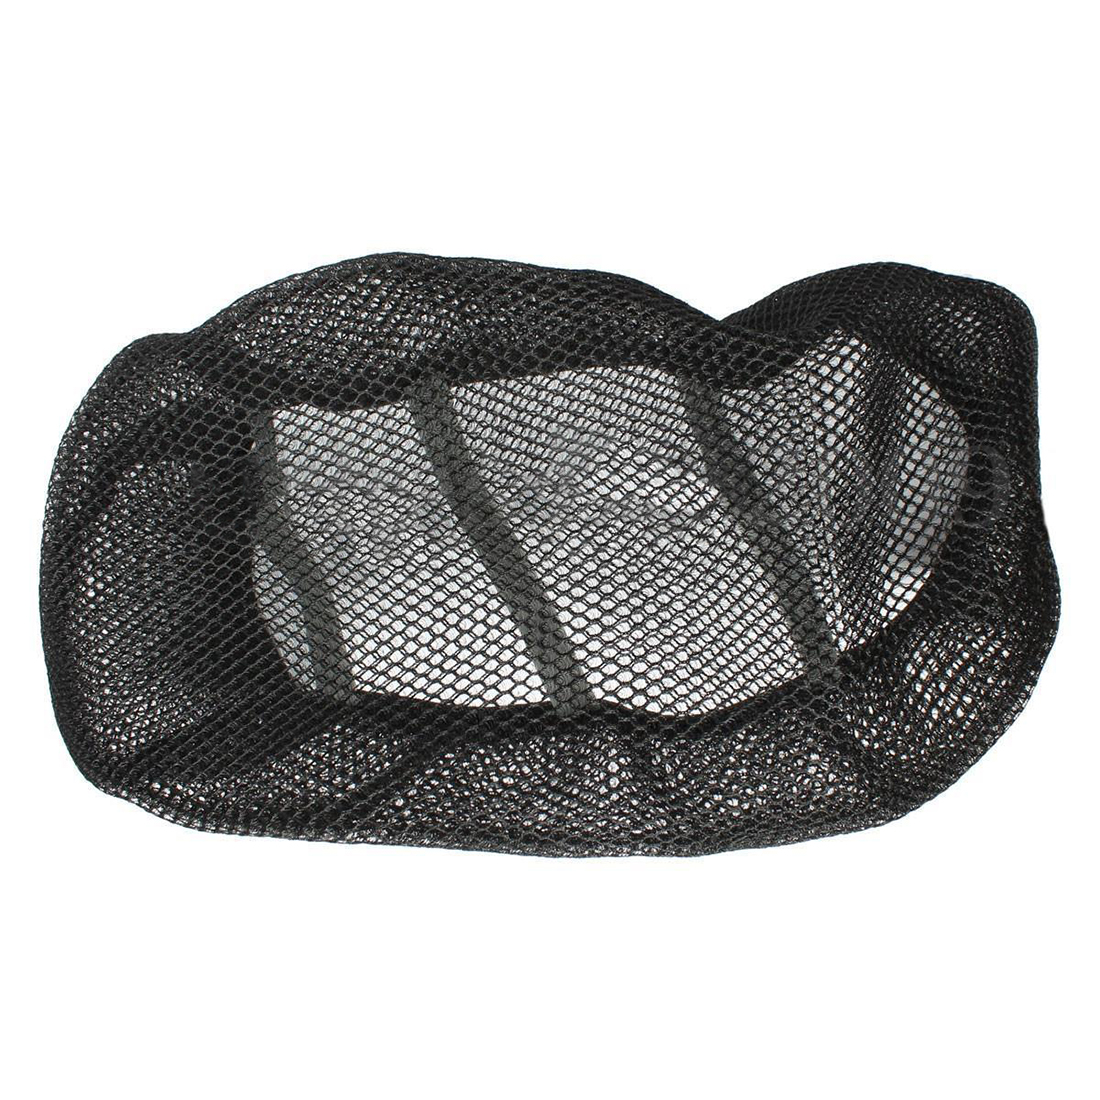 Promotion! 3D Black Motorcycle Electric Bike Net Seat Cover Breathable Protector Cushion